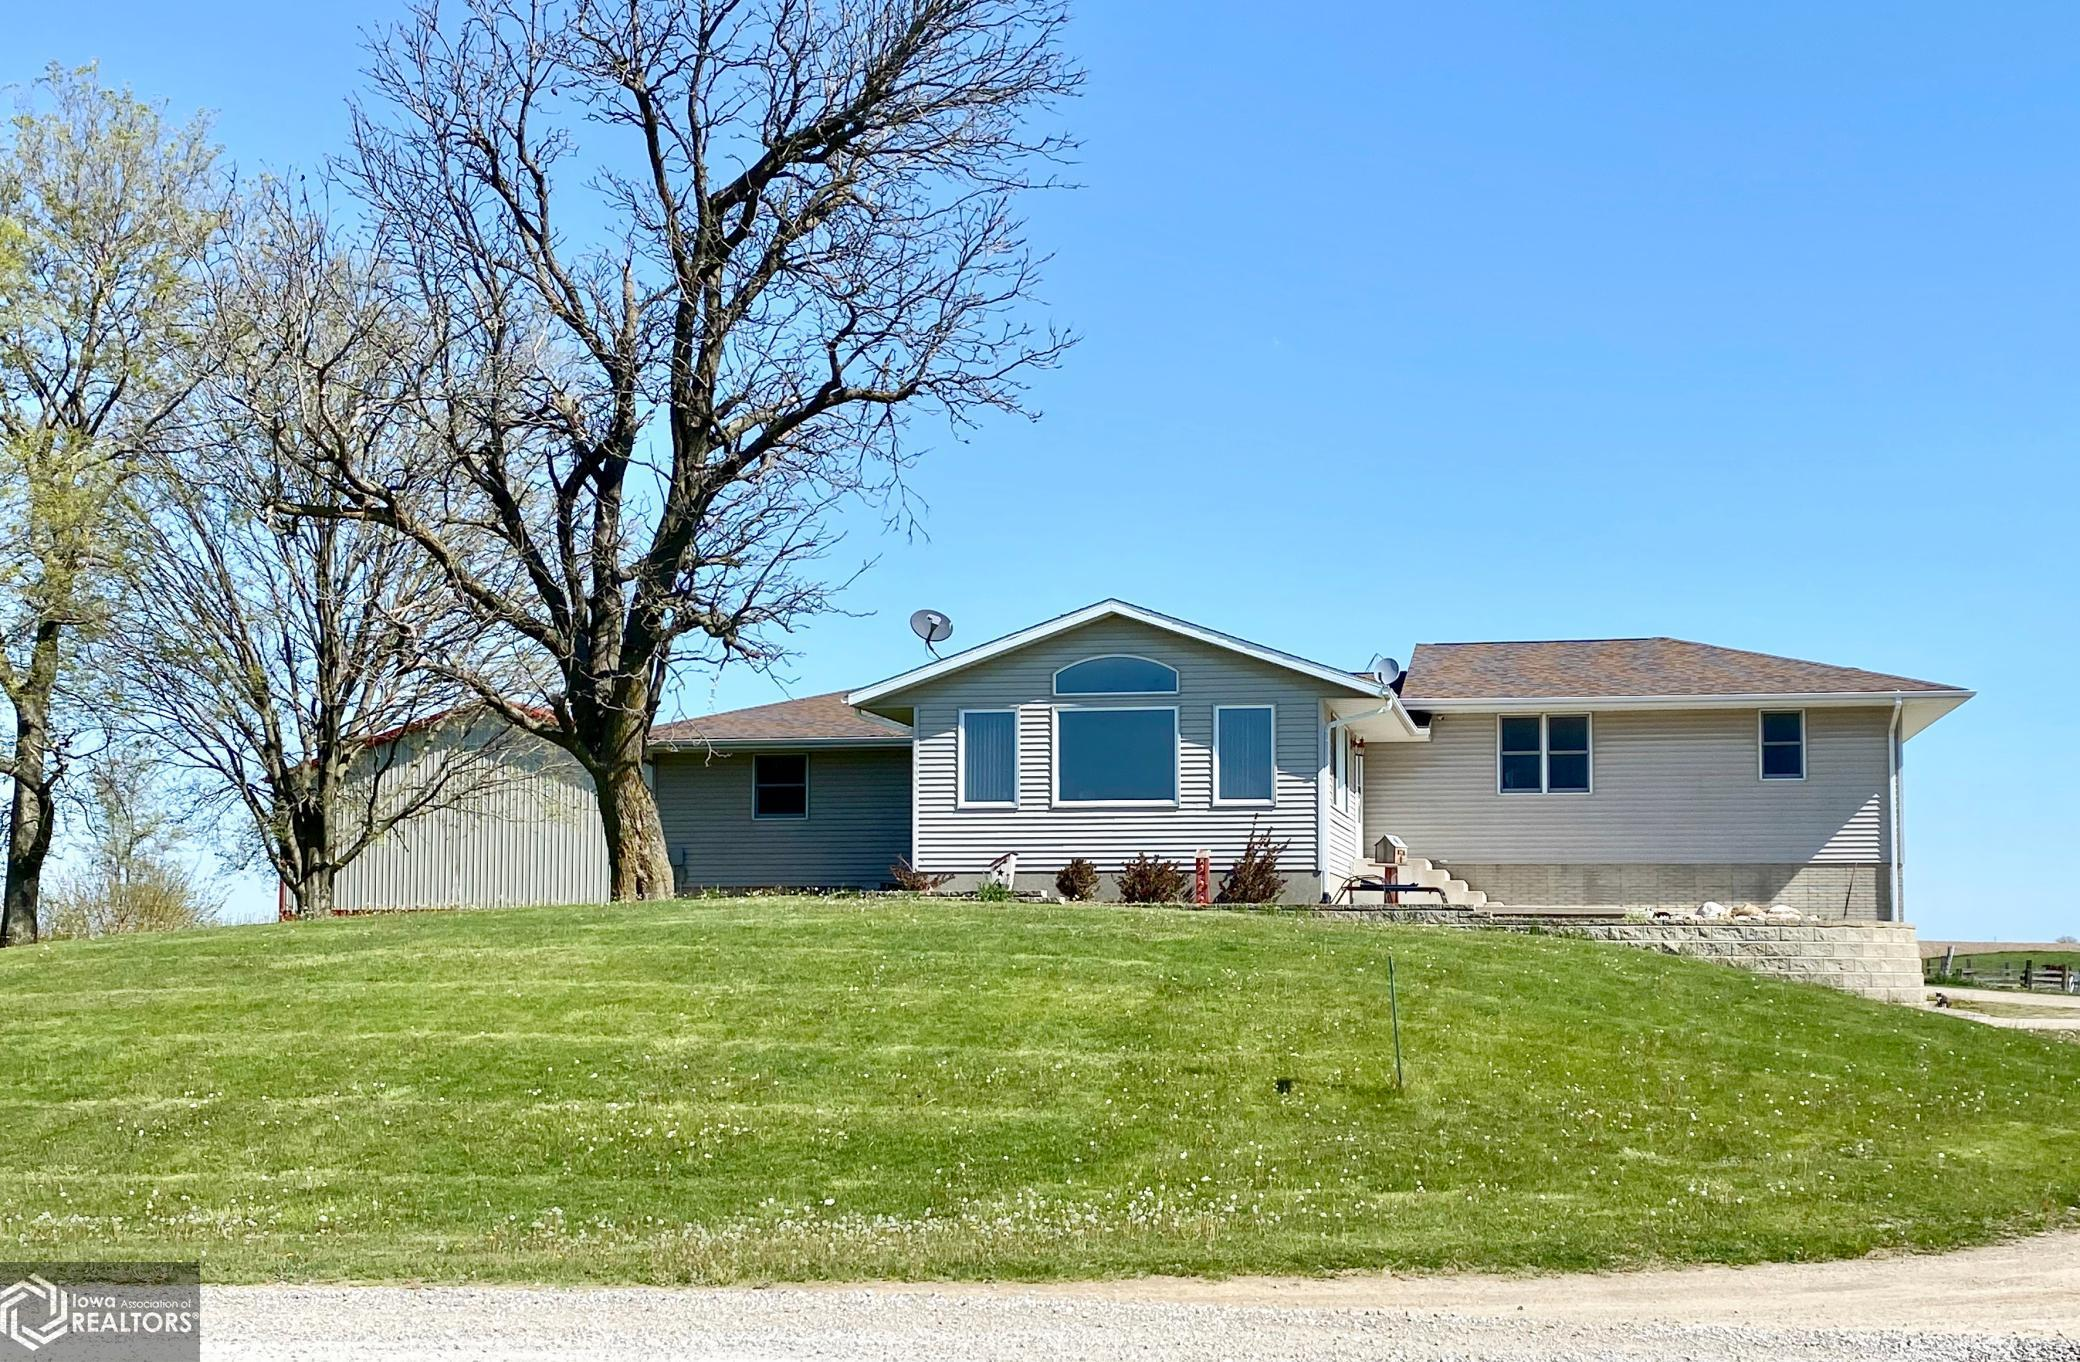 1943 370th, Brooklyn, Iowa 52211, 4 Bedrooms Bedrooms, ,2 BathroomsBathrooms,Single Family,For Sale,370th,5757128